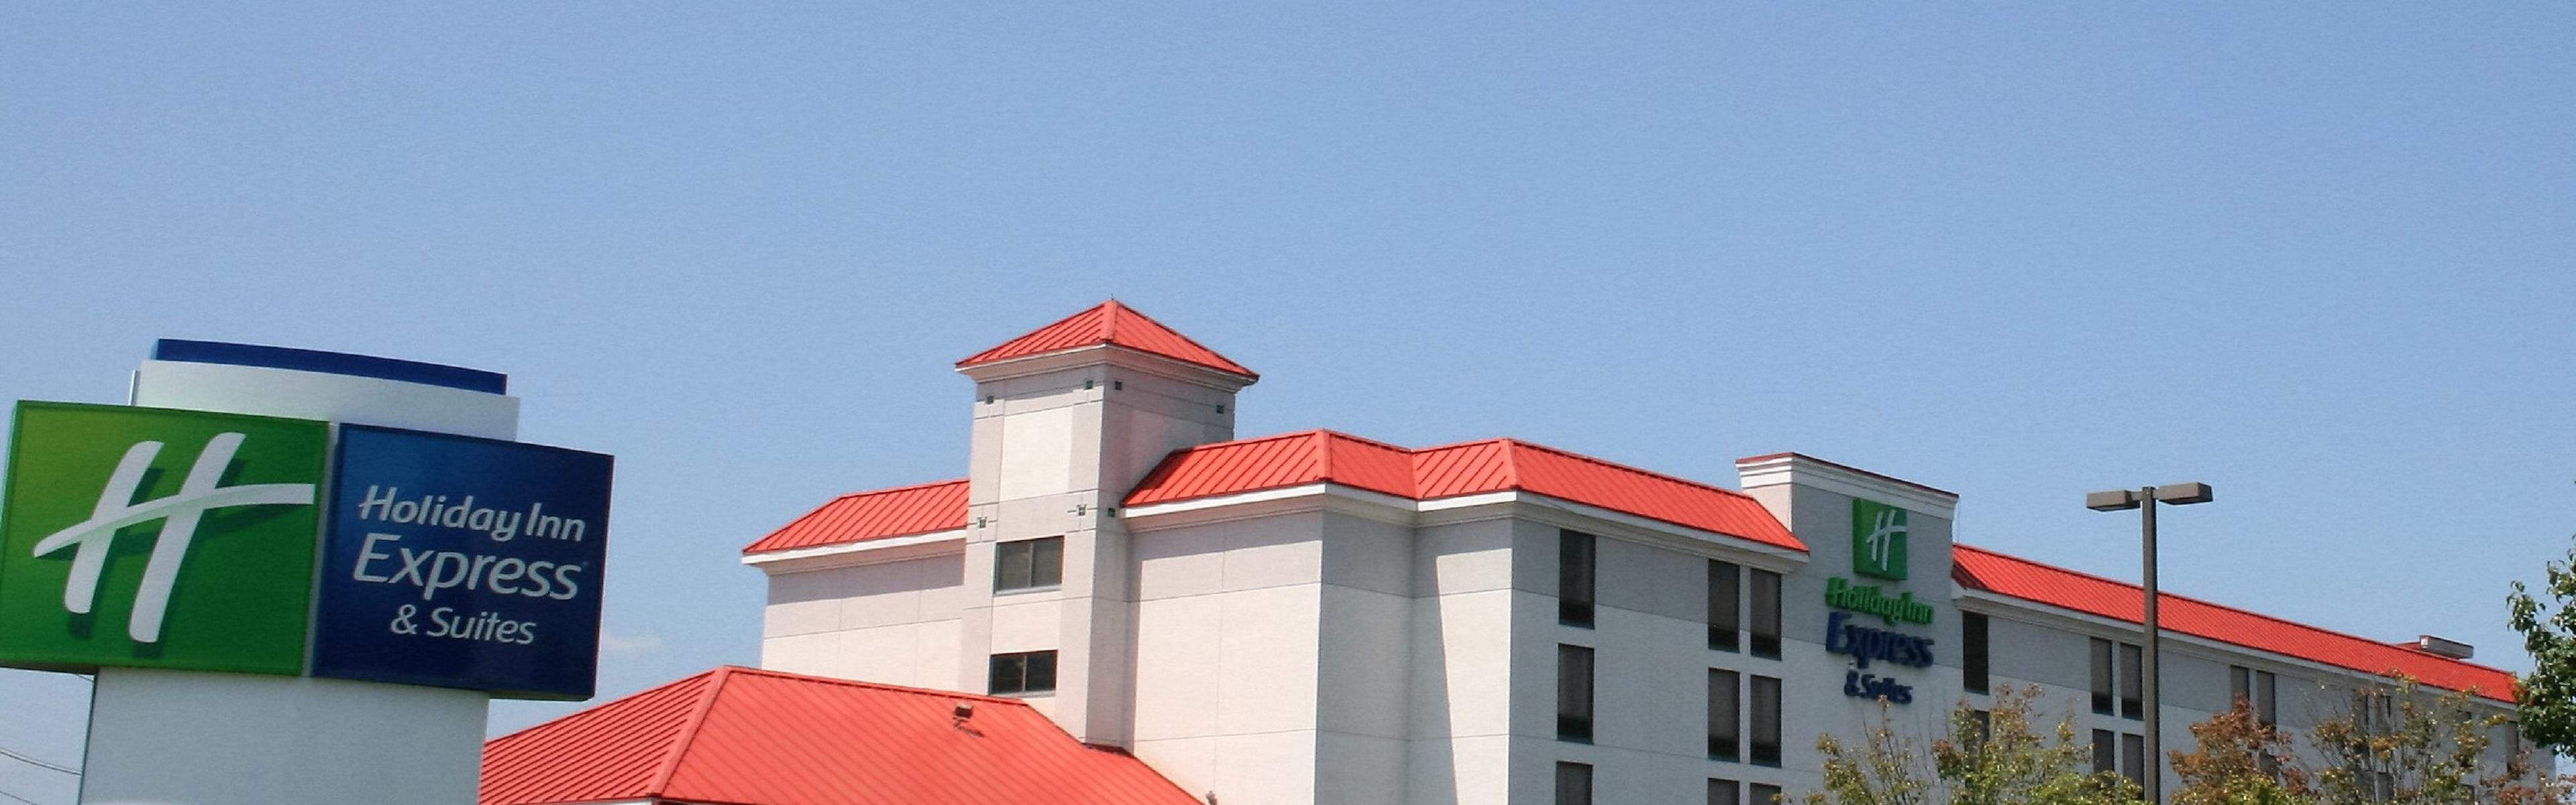 Holiday Inn Express & Suites Pigeon Forge/Near Dollywood image 0